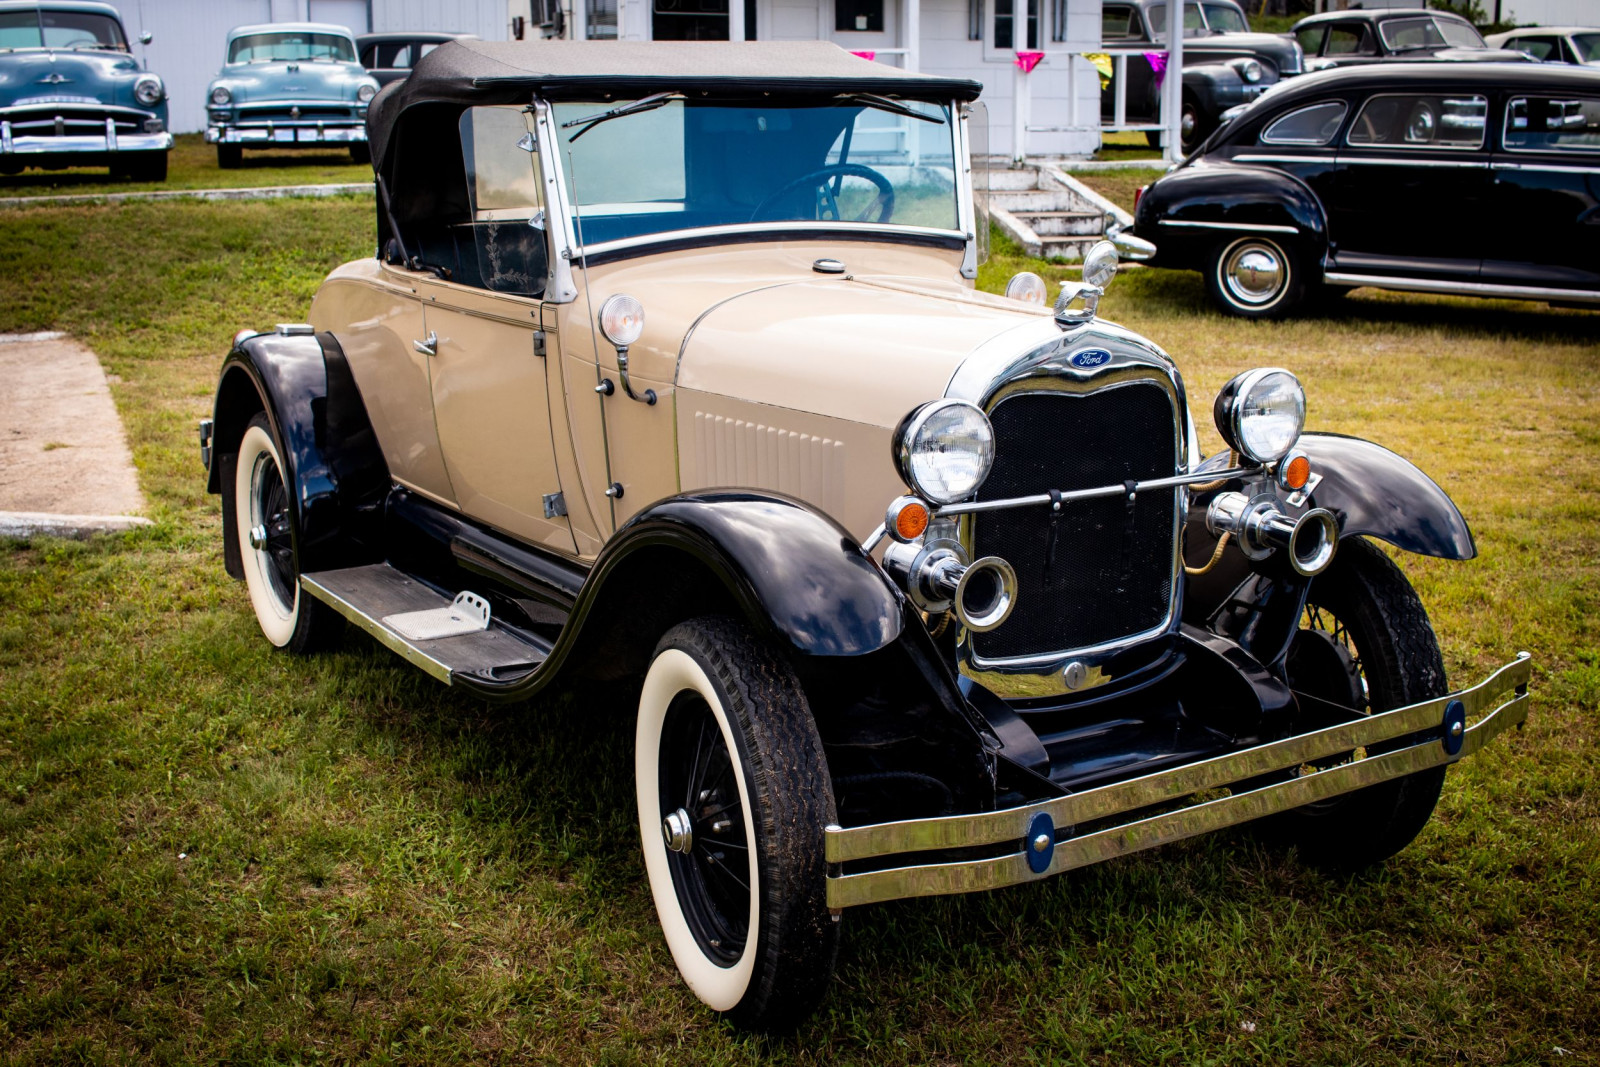 1980 Shay Model A Roadster - Image 3